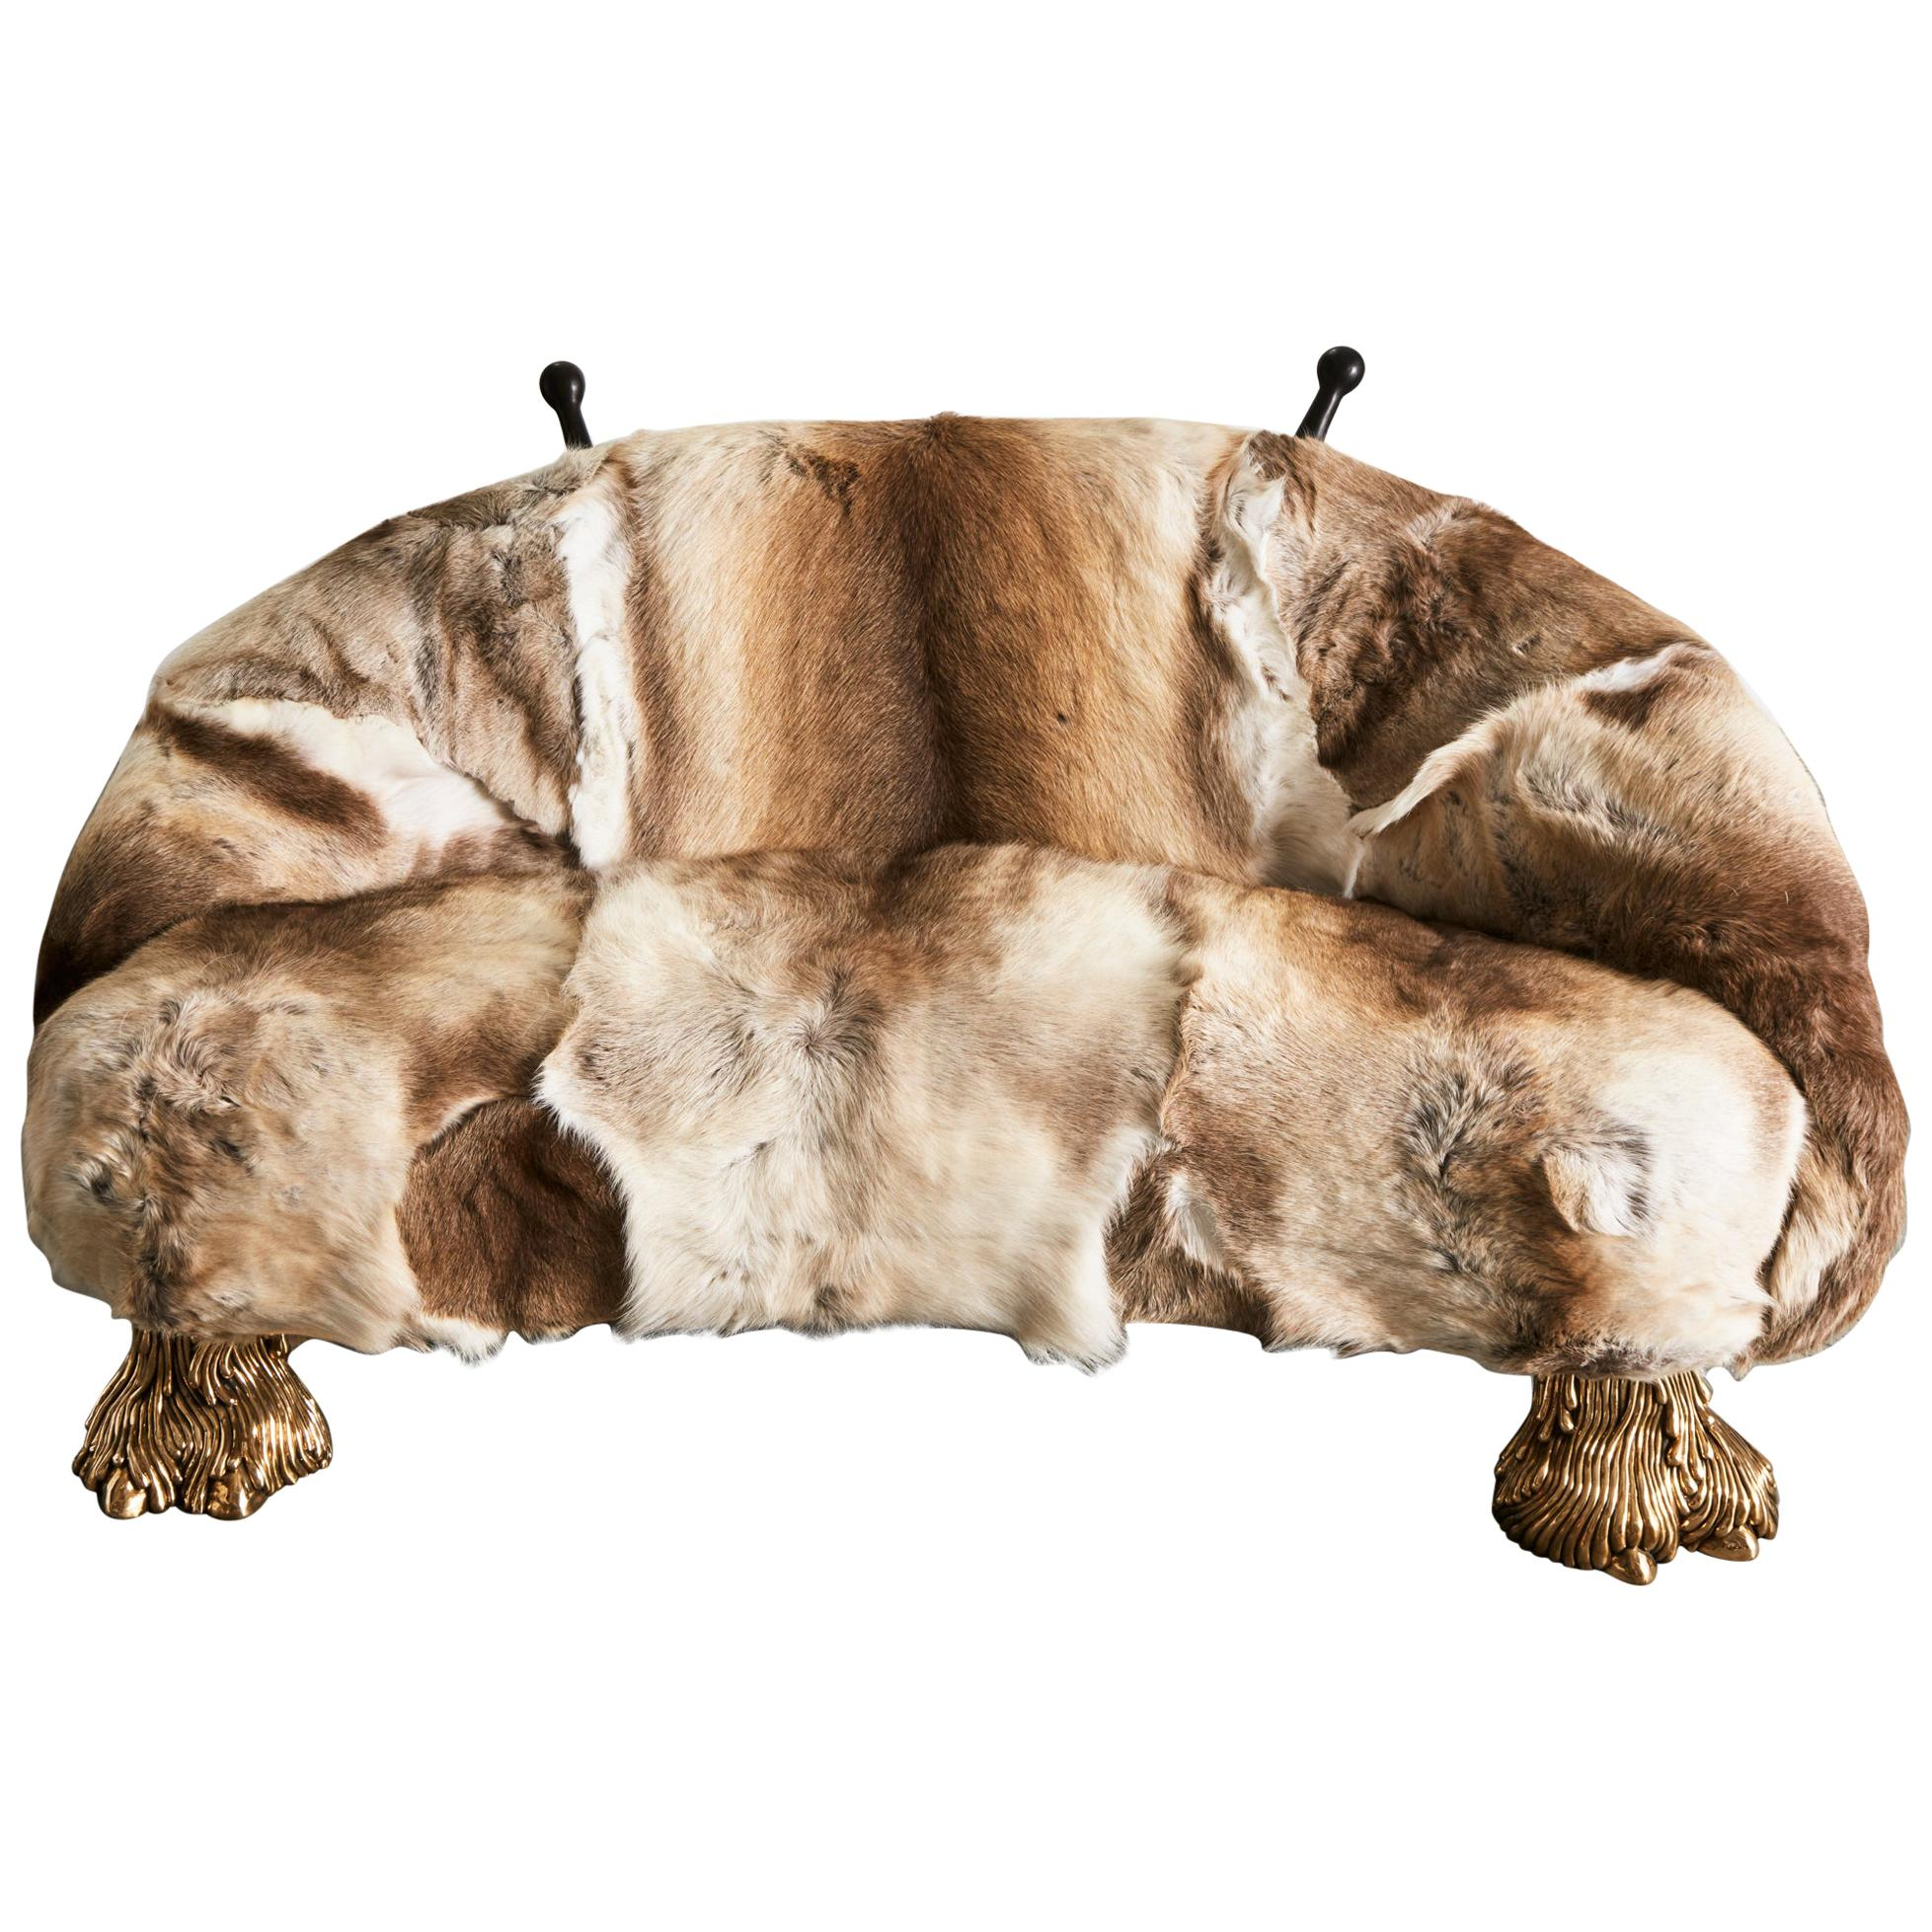 Unique Beast Settee by The Haas Brothers